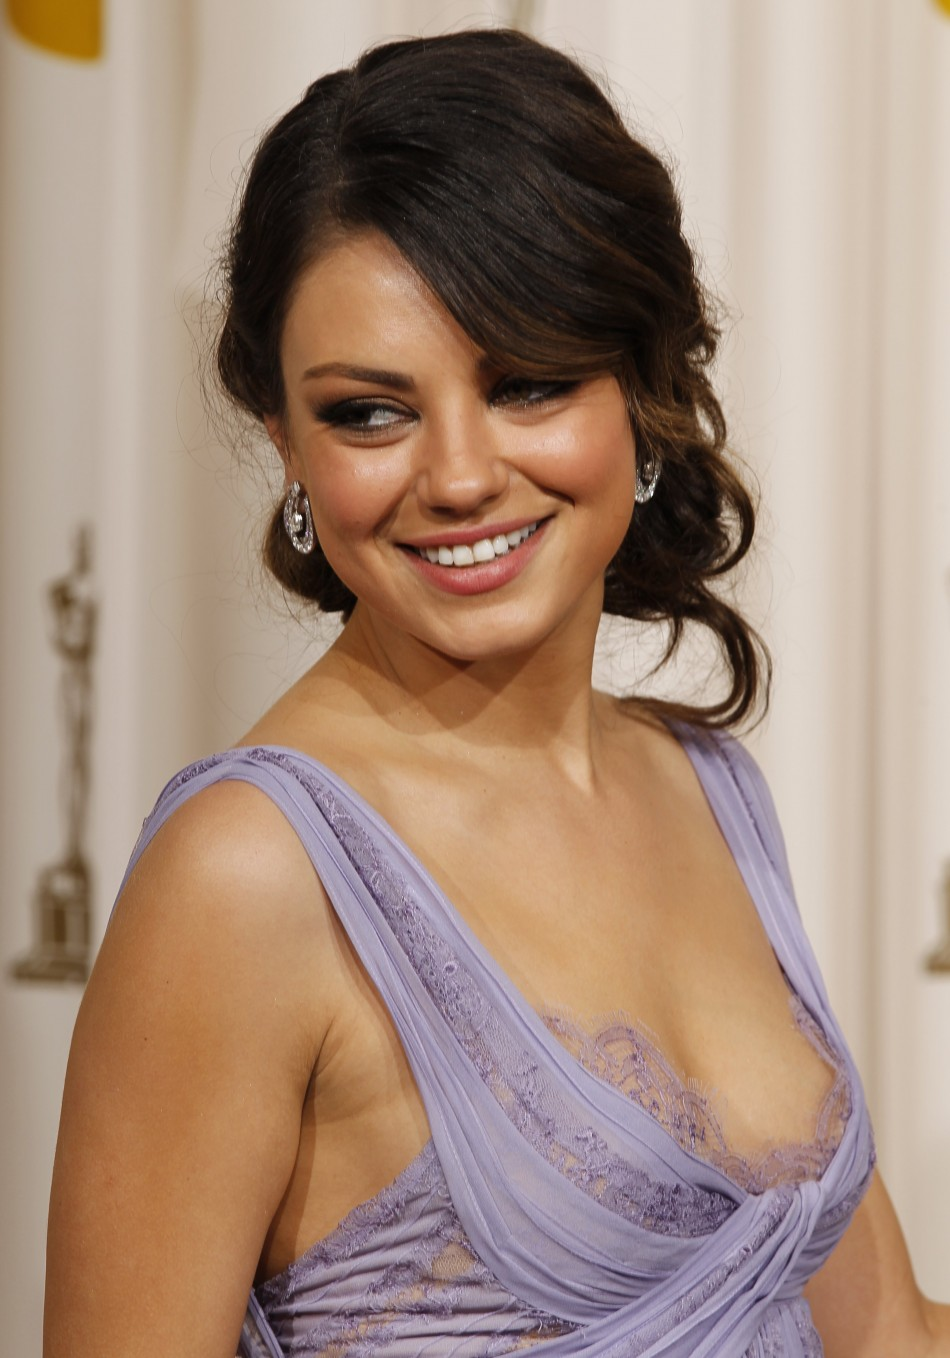 Fifty Shades of Grey Film Potential Actress Mila Kunis.